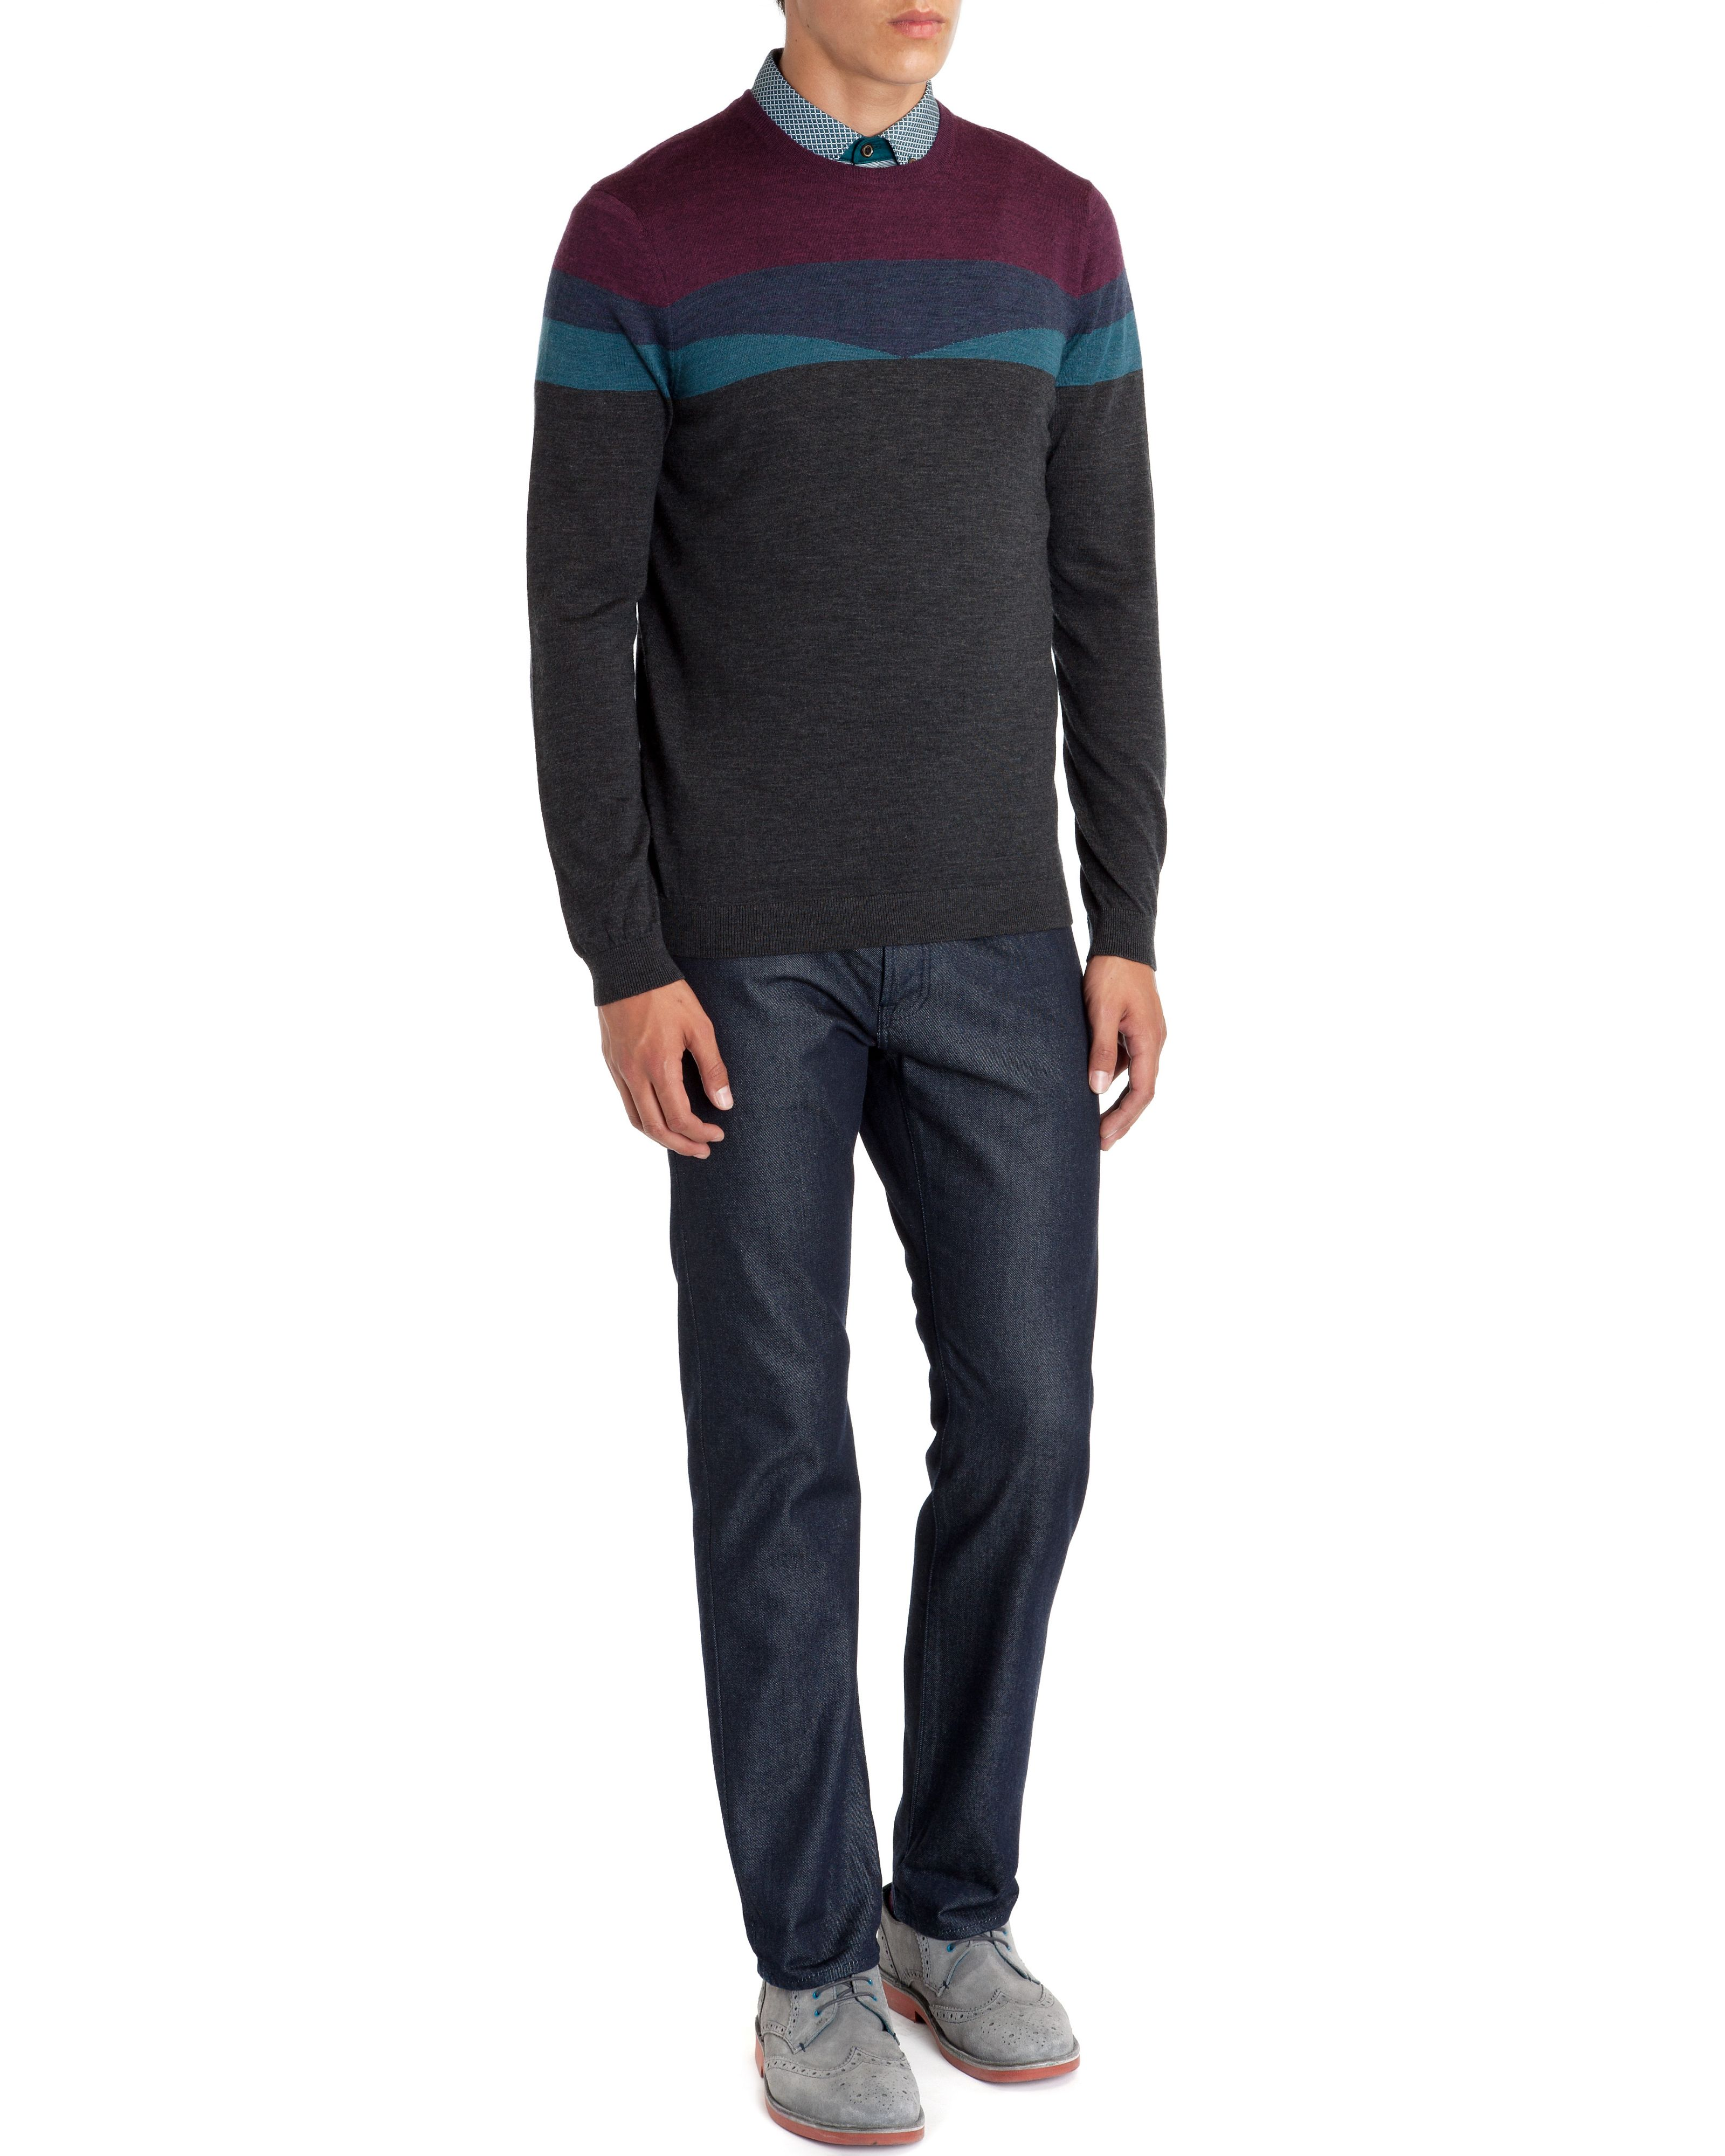 Farisle patterened merino wool jumper